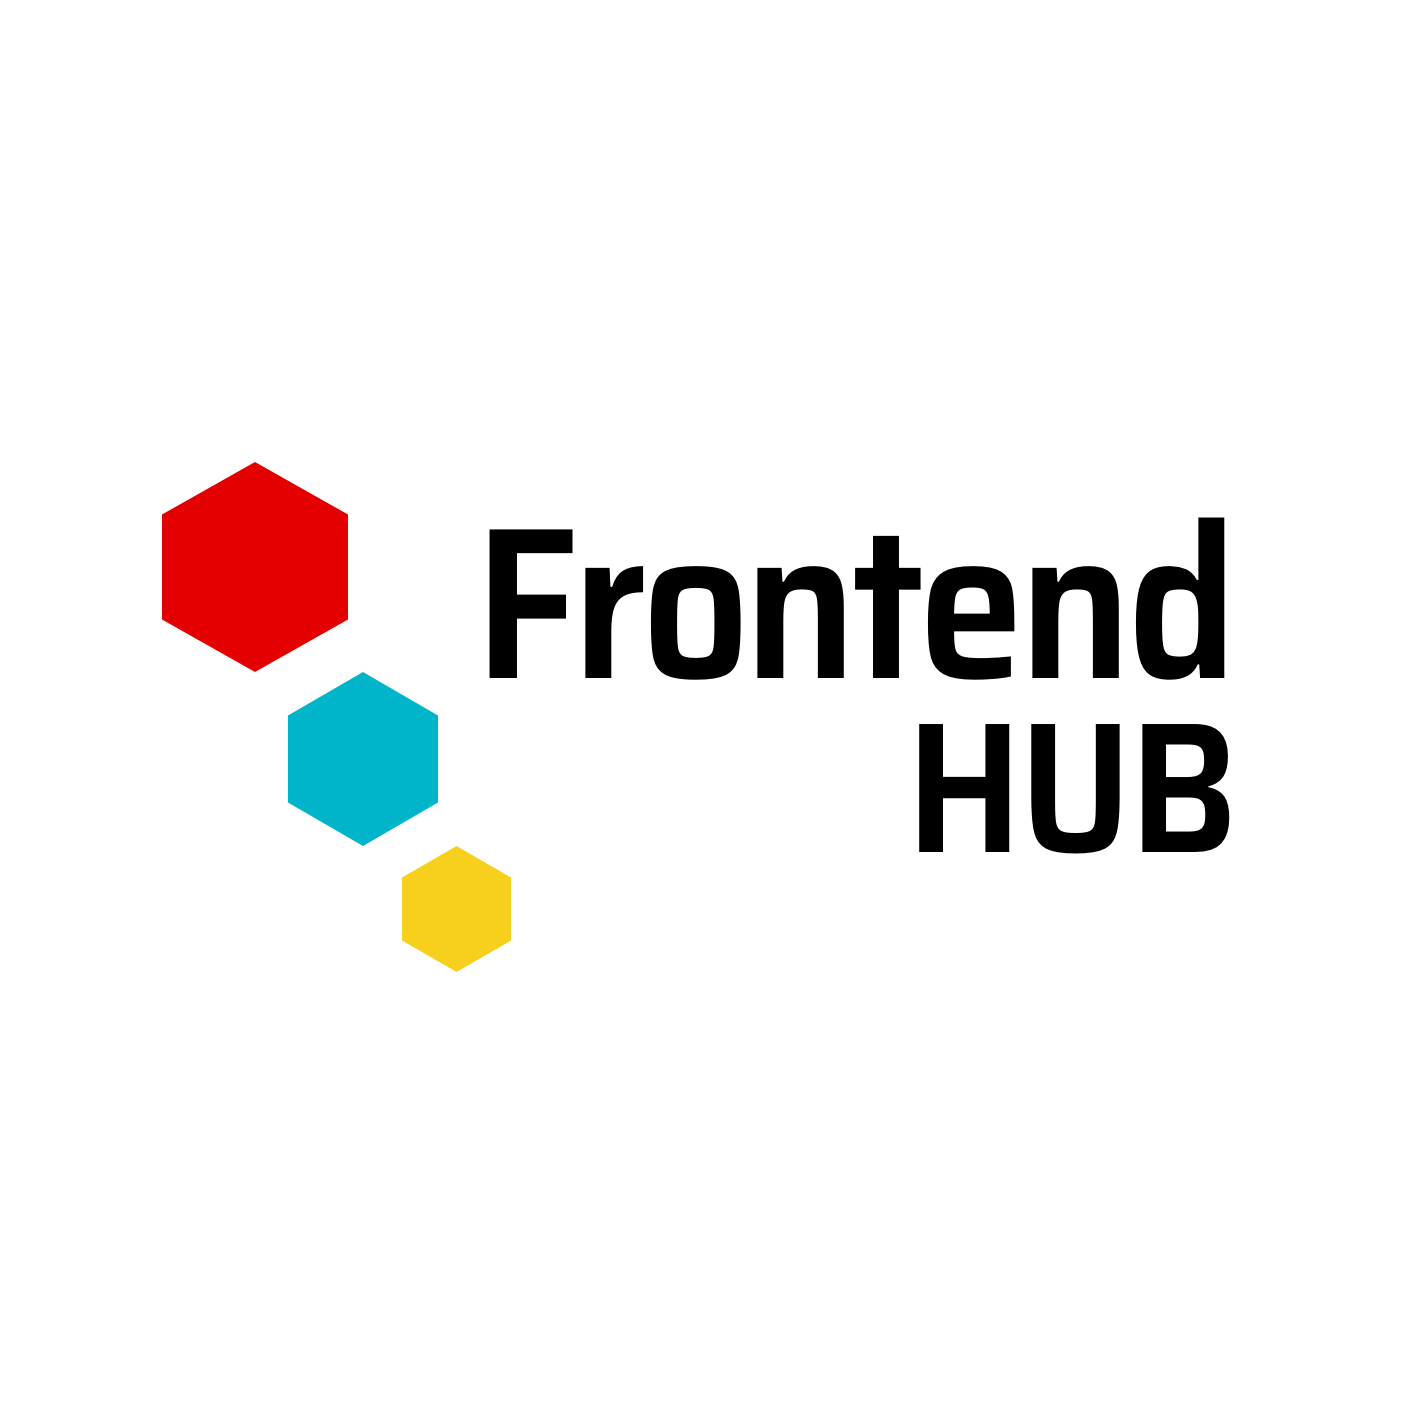 Frontend Hub